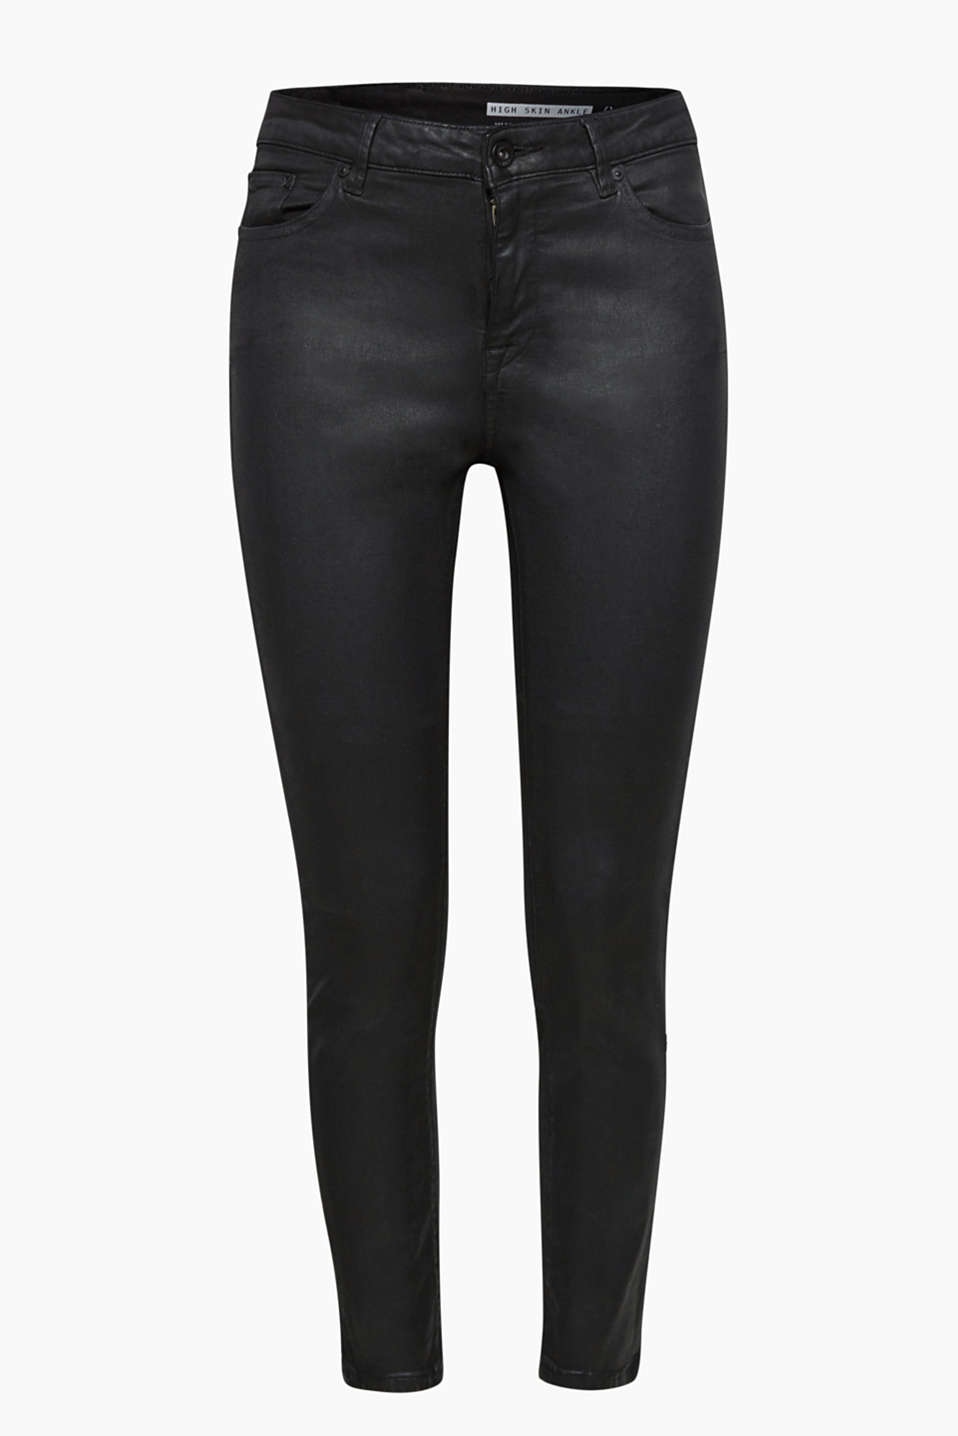 Cool coating: these ankle-length skinny jeans have a slightly shiny finish